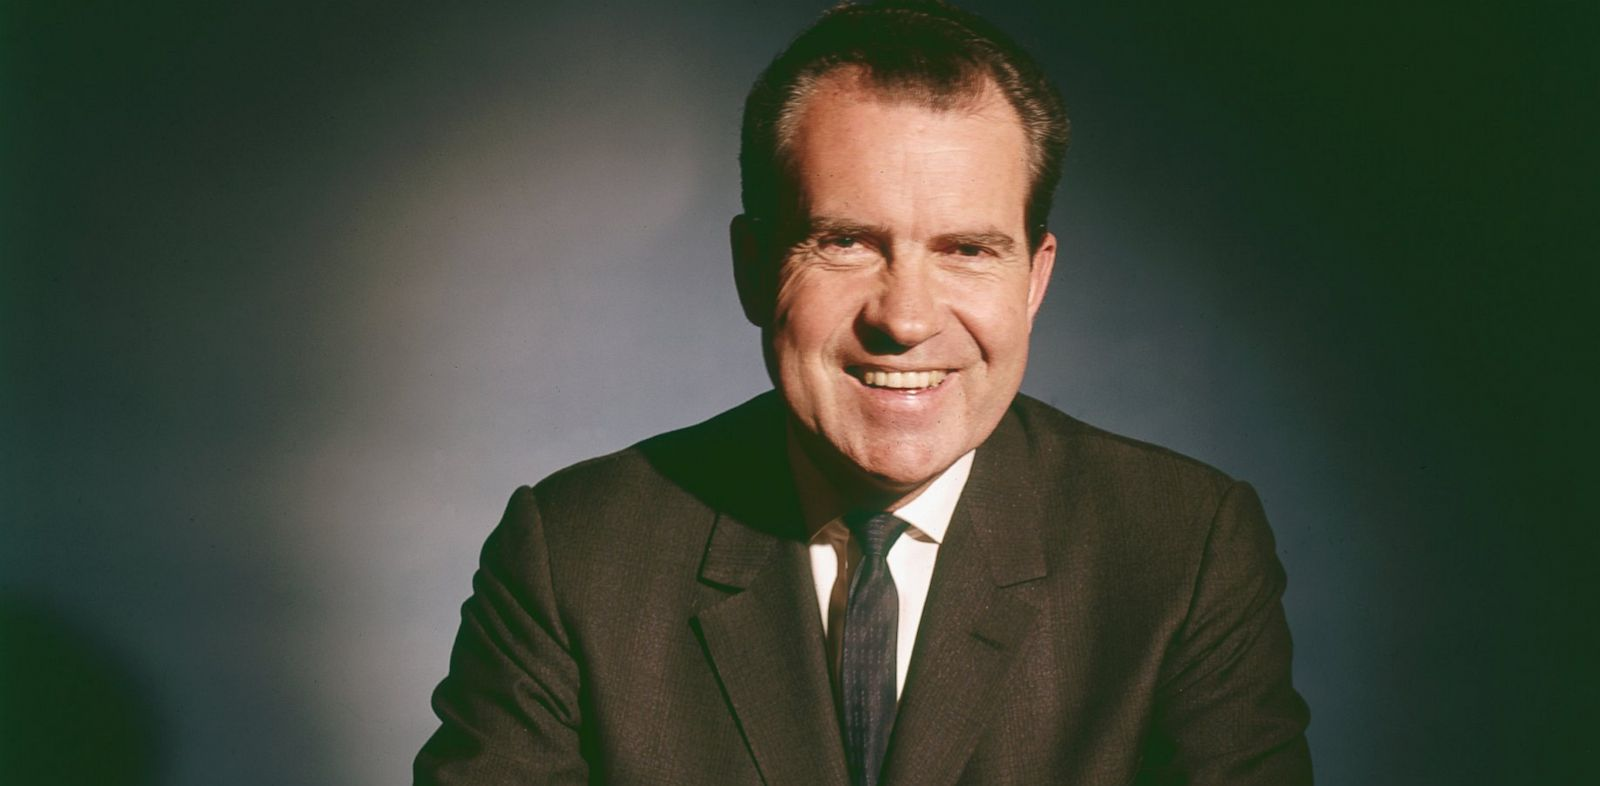 PHOTO: Portrait of American politician and President Richard Nixon as he smiles and sits at a table, 1960s.